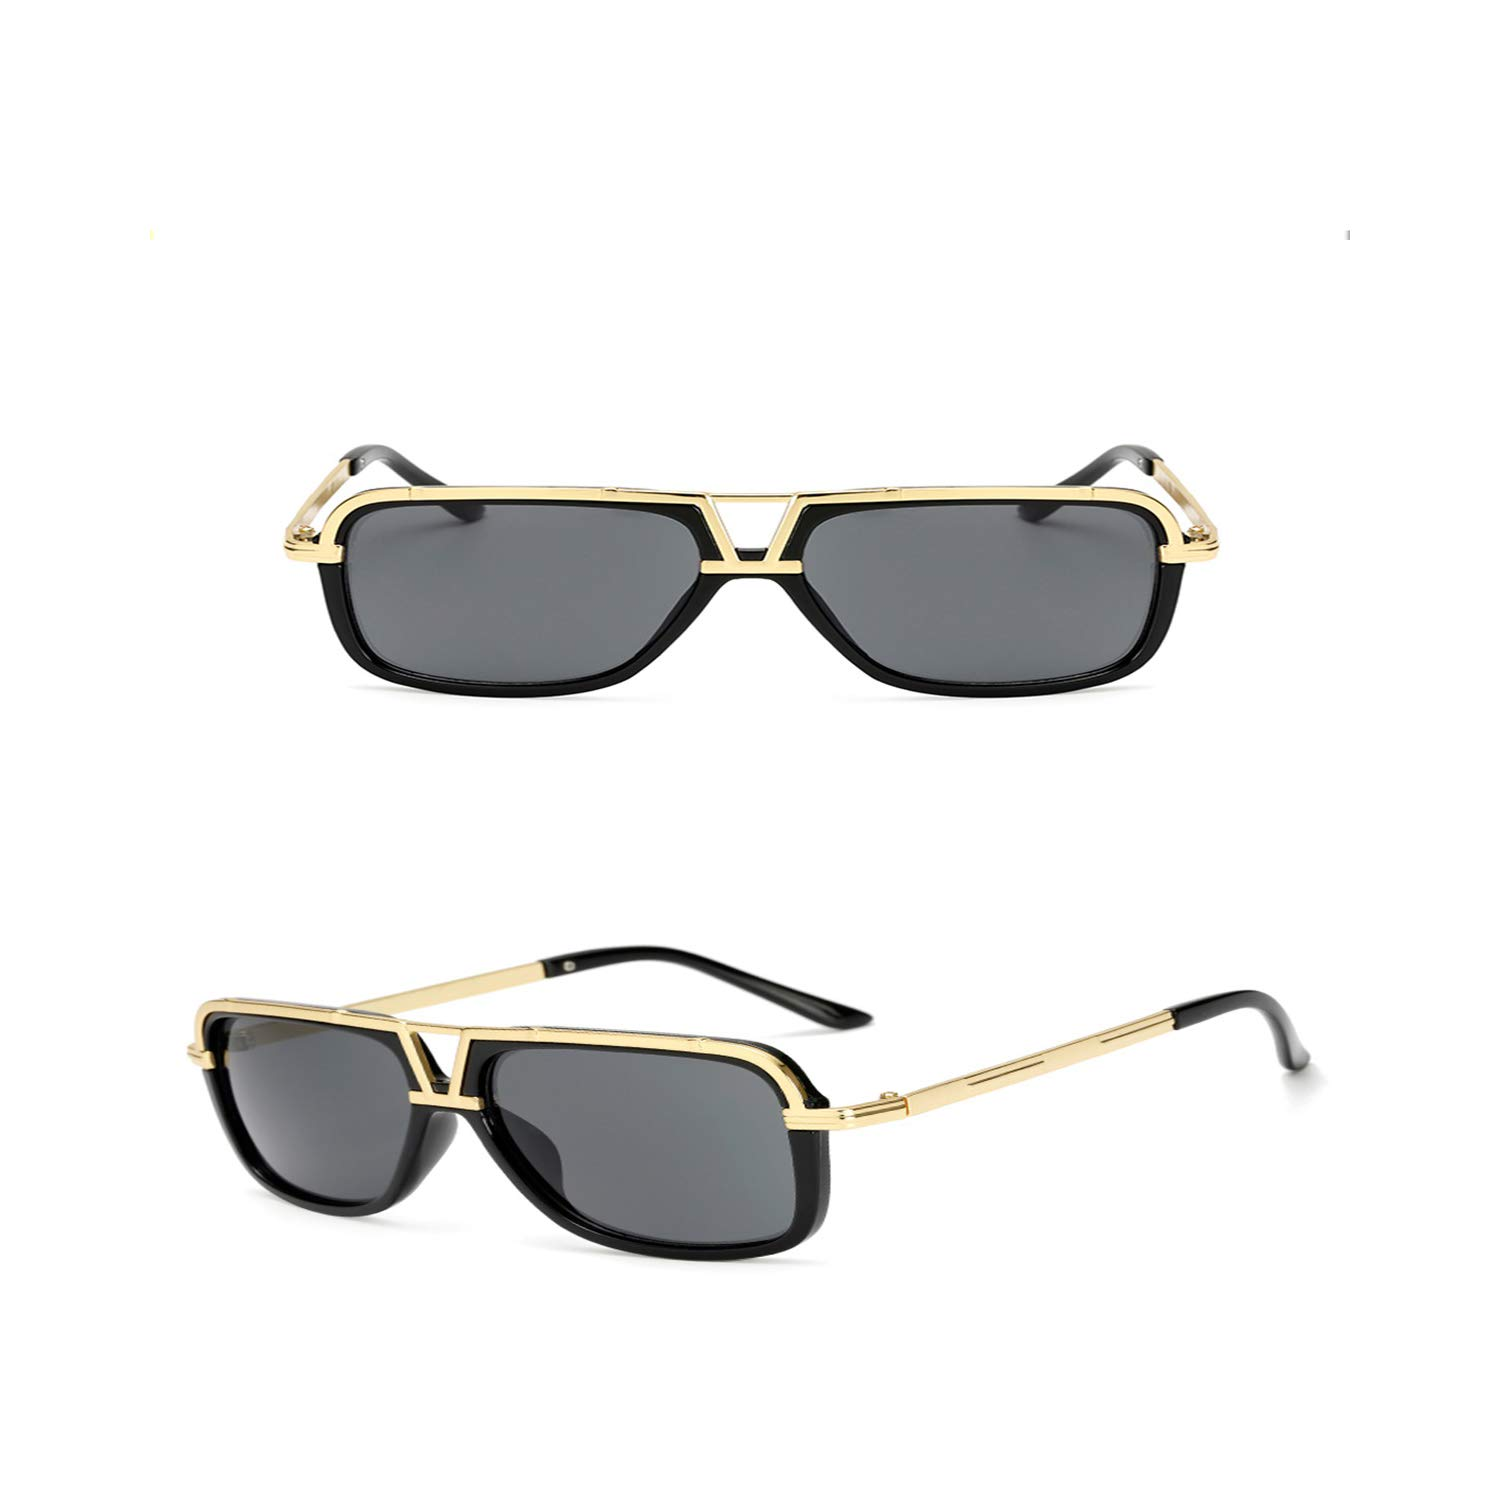 Amazon.com: Mens Sunglasses New Big Frame Goggle Summer ...